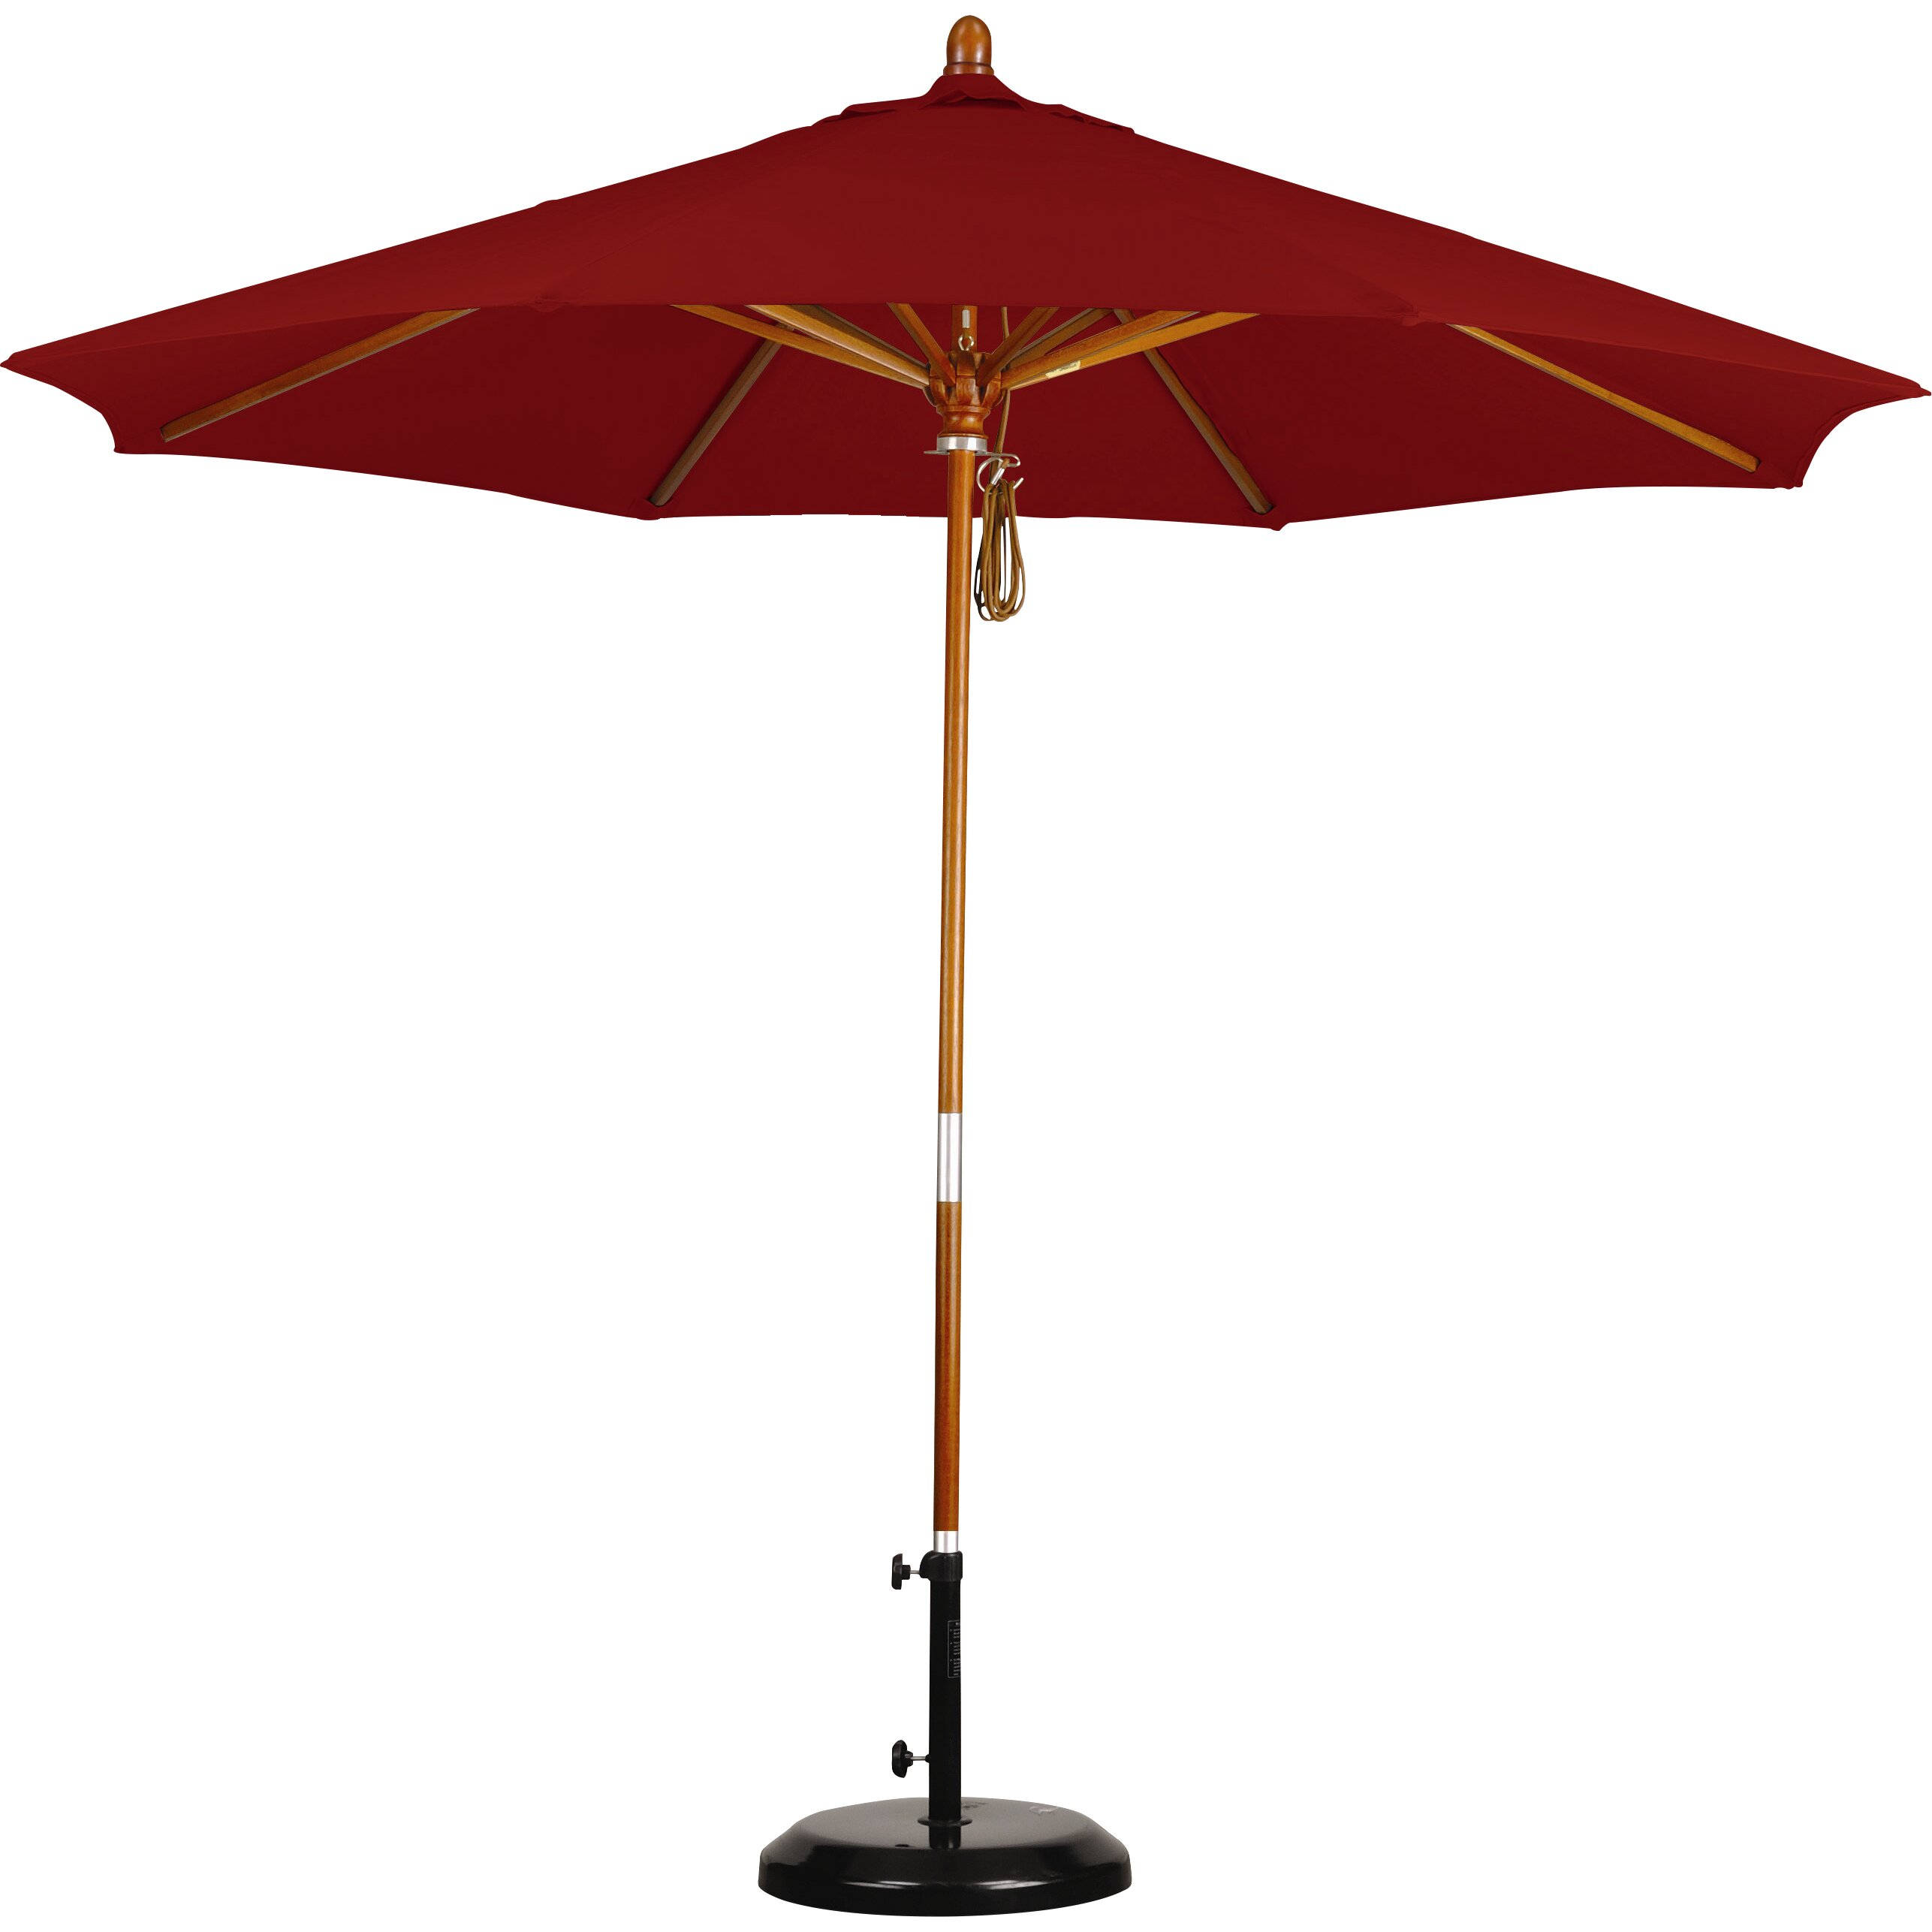 Darby home co fretwell 9 wood market umbrella amp reviews wayfair